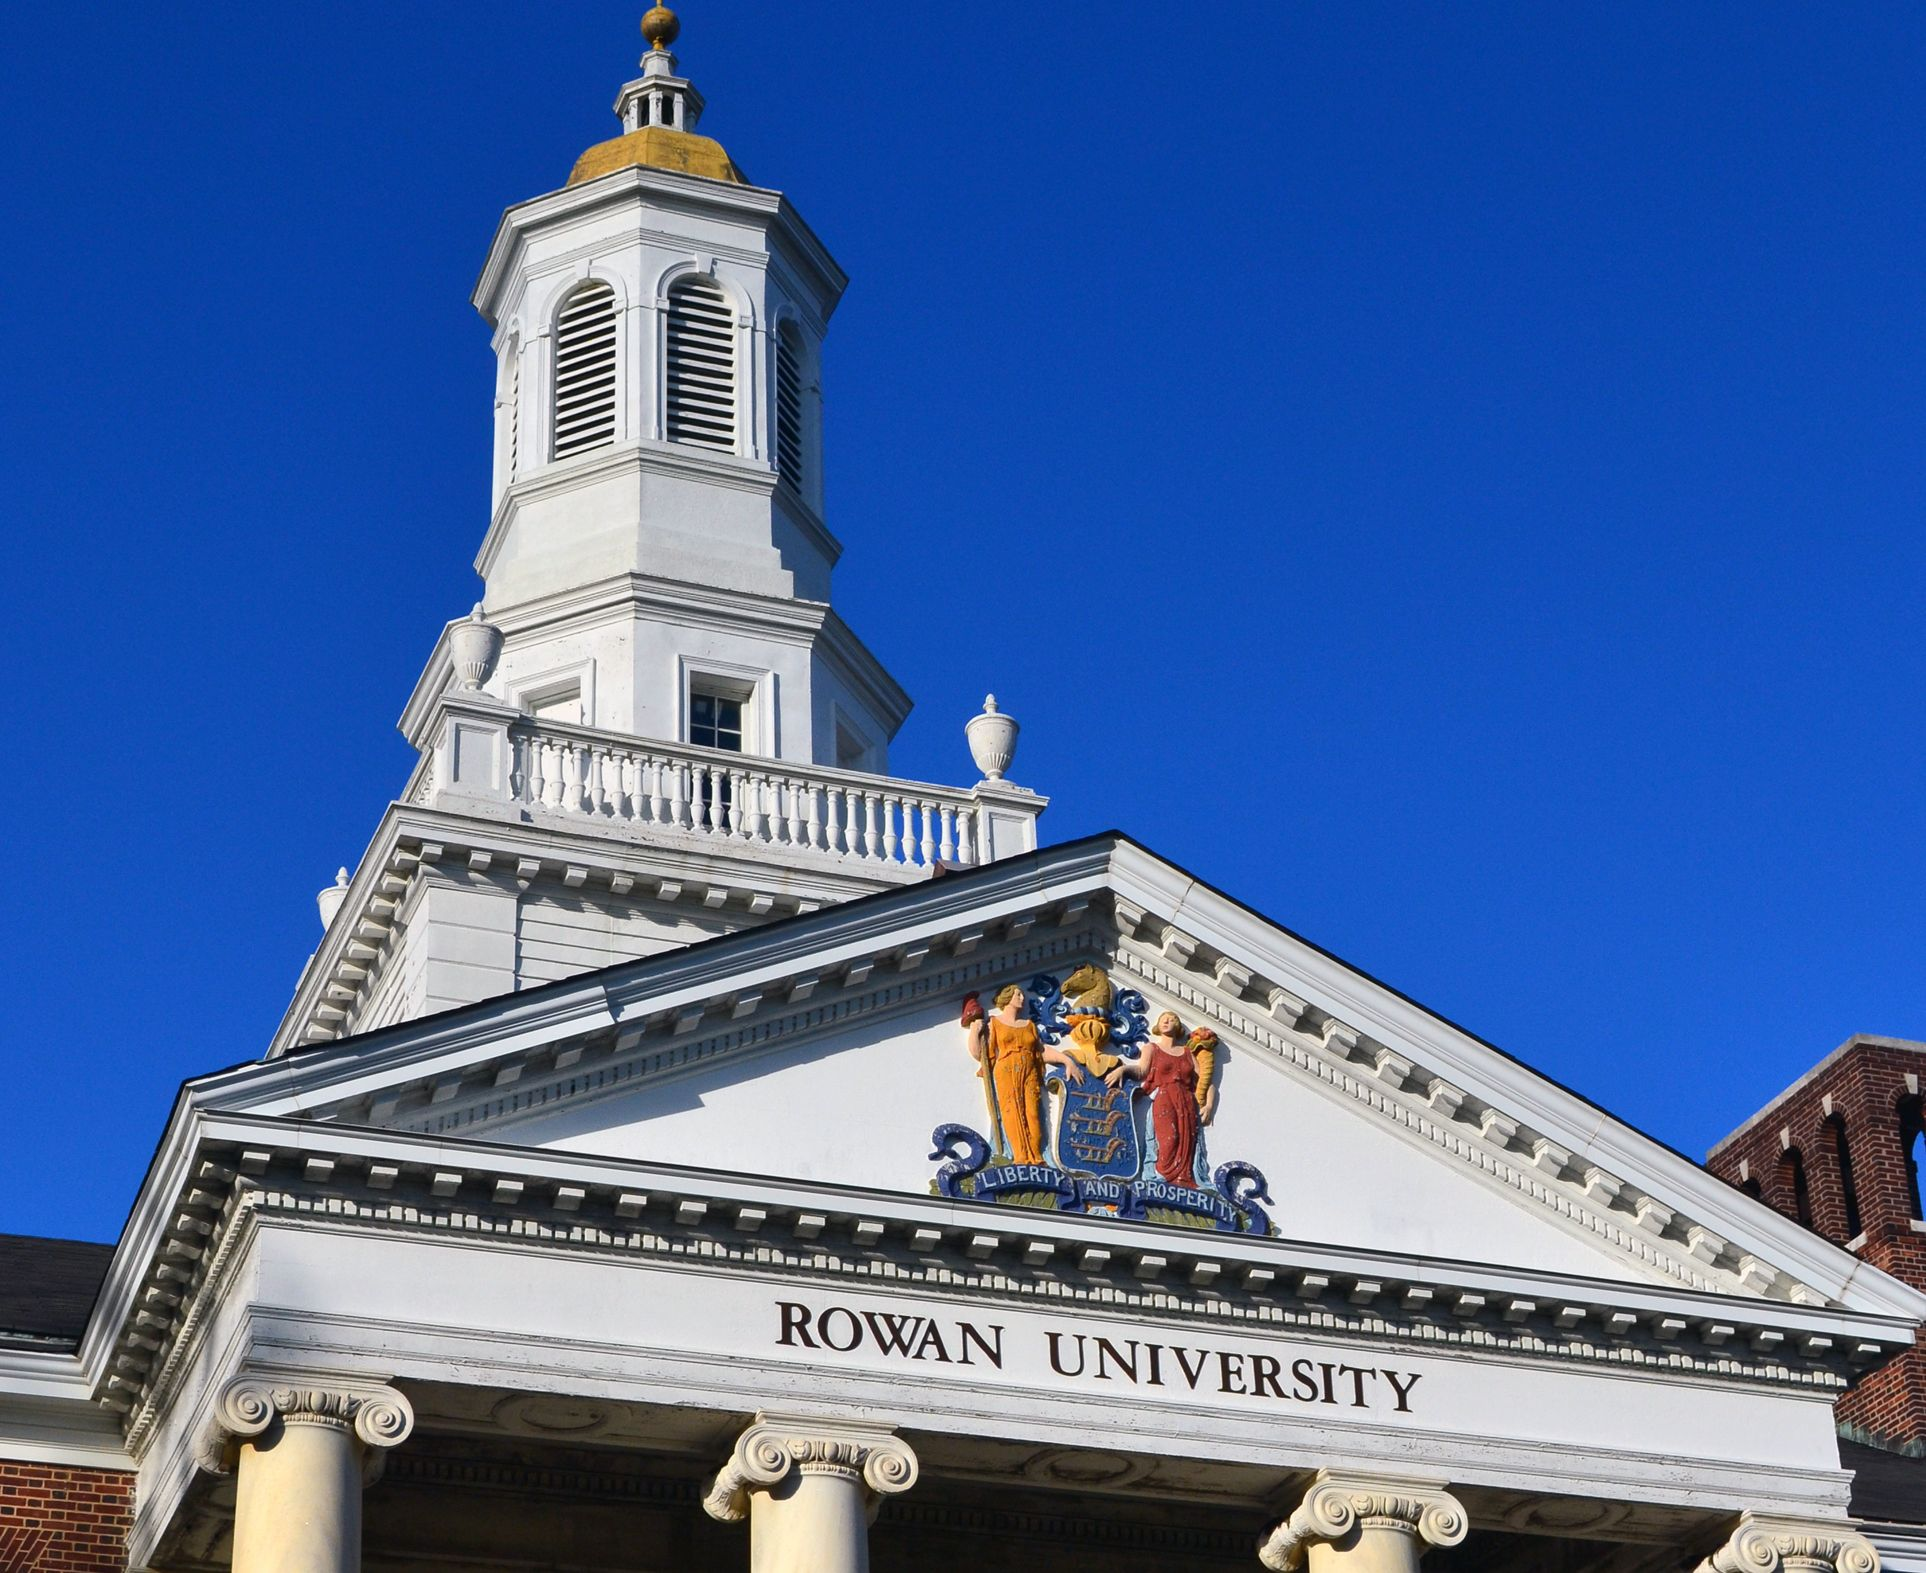 Rowan University - Admission Requirements, SAT, ACT, GPA and chance of acceptance